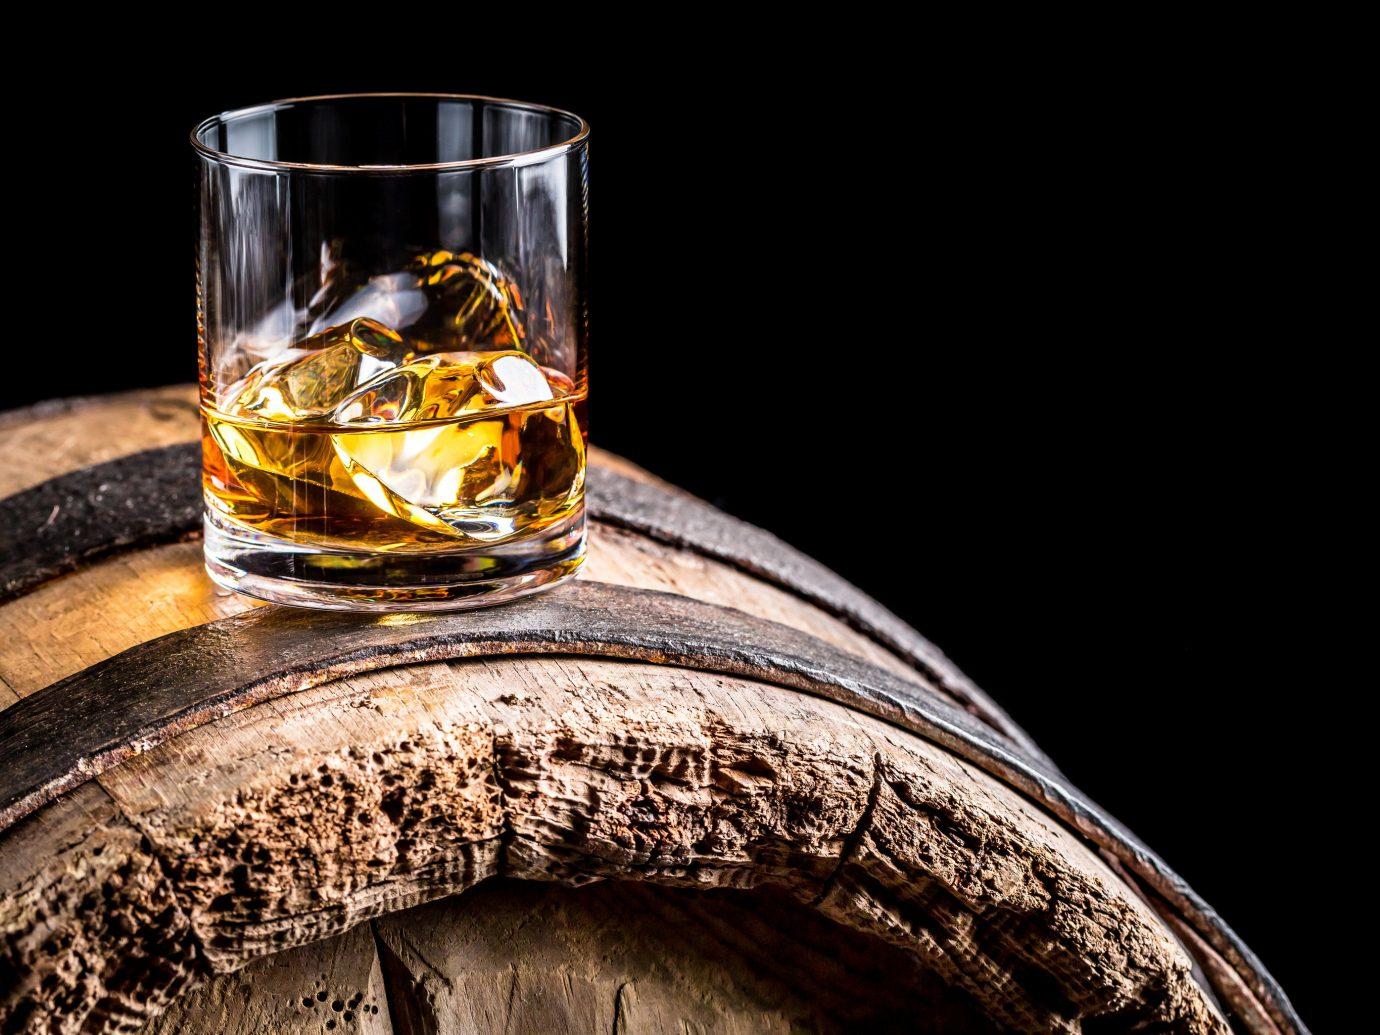 Food + Drink still life photography distilled beverage close up Drink macro photography glass whisky